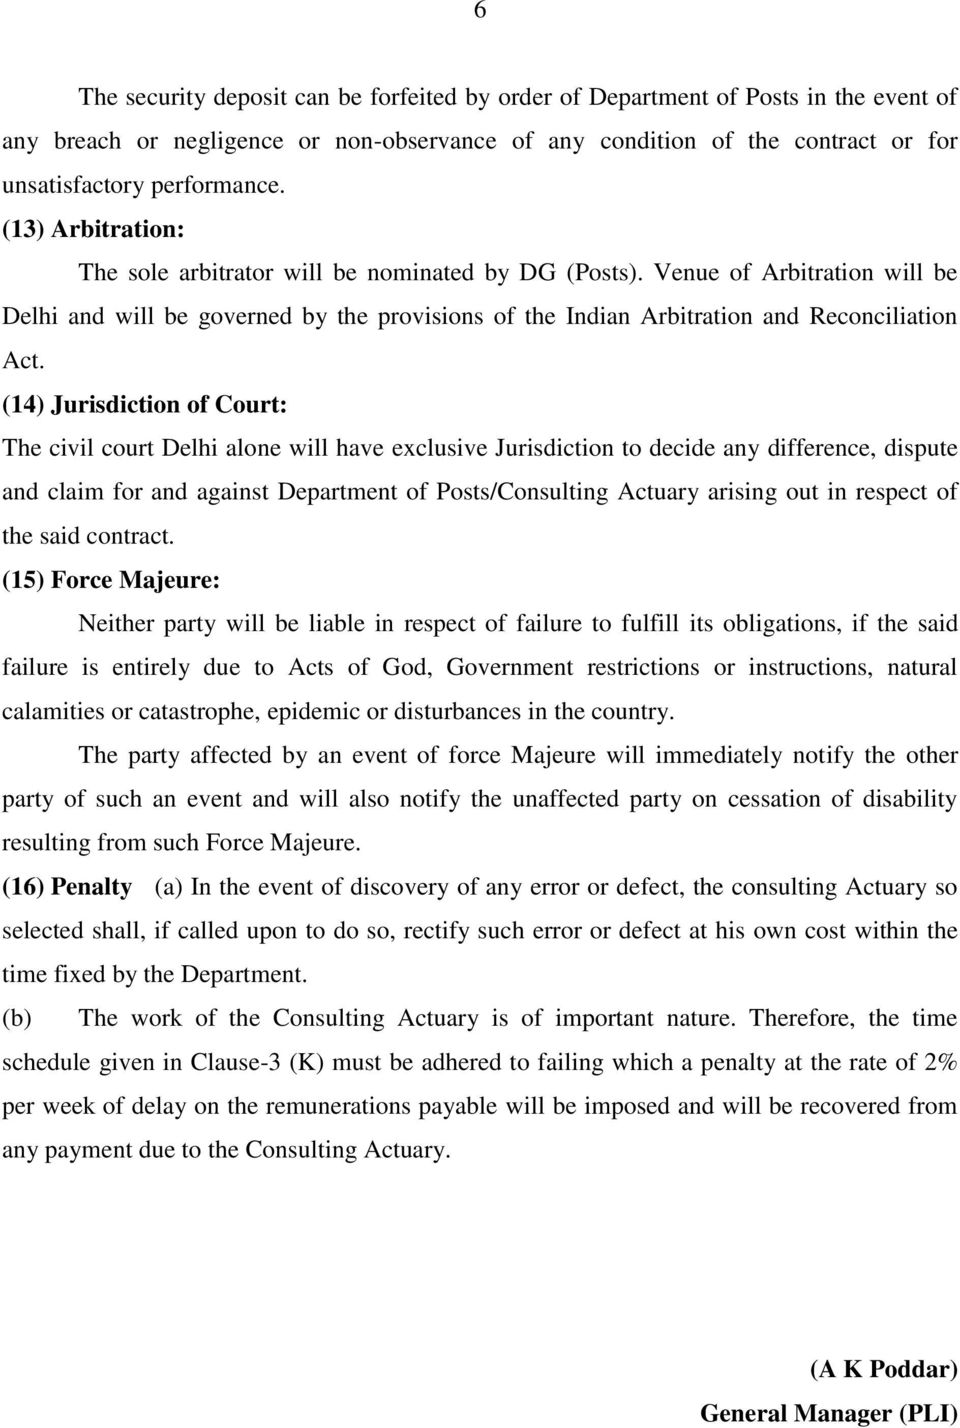 (14) Jurisdiction of Court: The civil court Delhi alone will have exclusive Jurisdiction to decide any difference, dispute and claim for and against Department of Posts/Consulting Actuary arising out